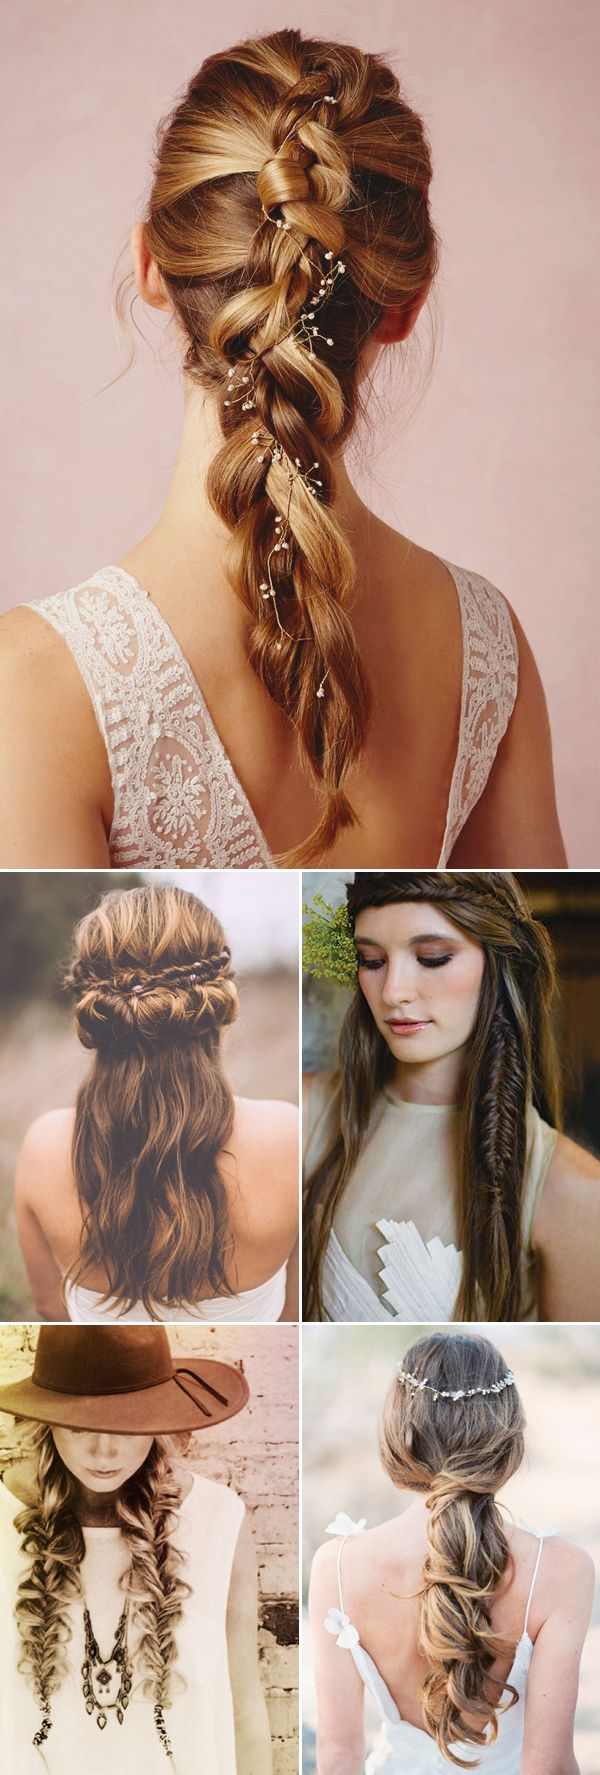 best images about Peinados on Pinterest  Updo Hairstyles for